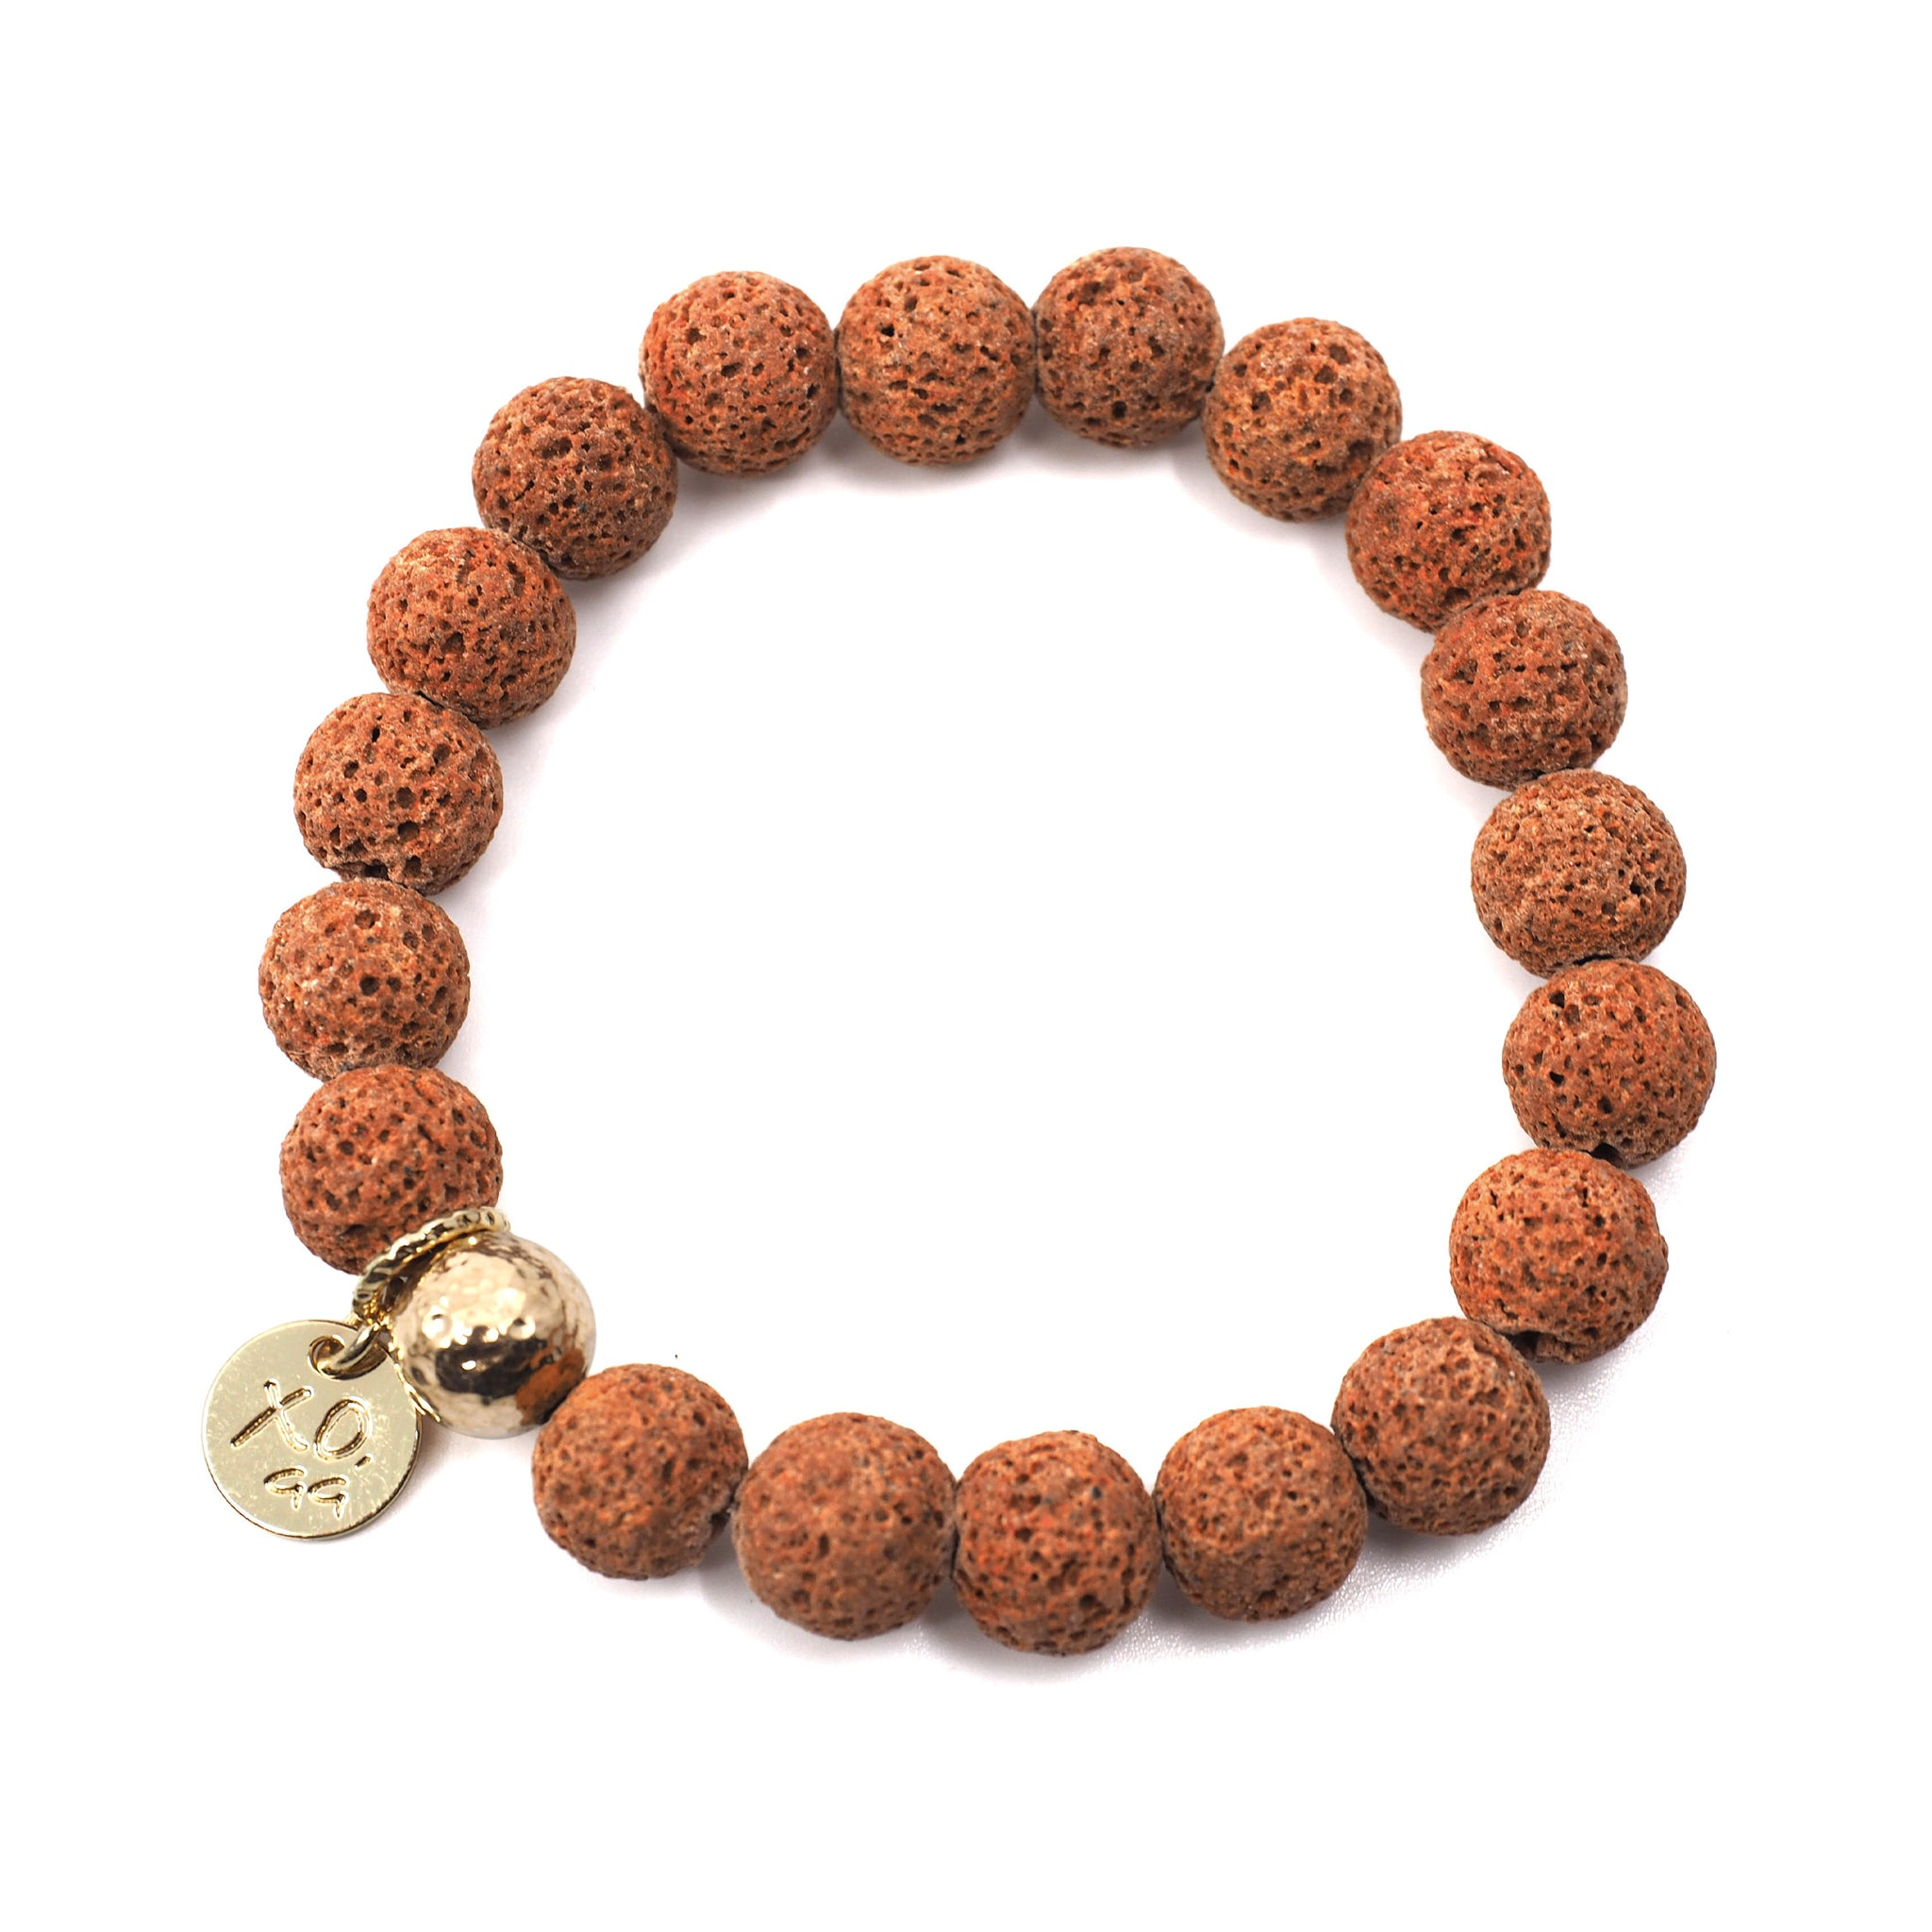 The Luna Bracelet in Brick Lava